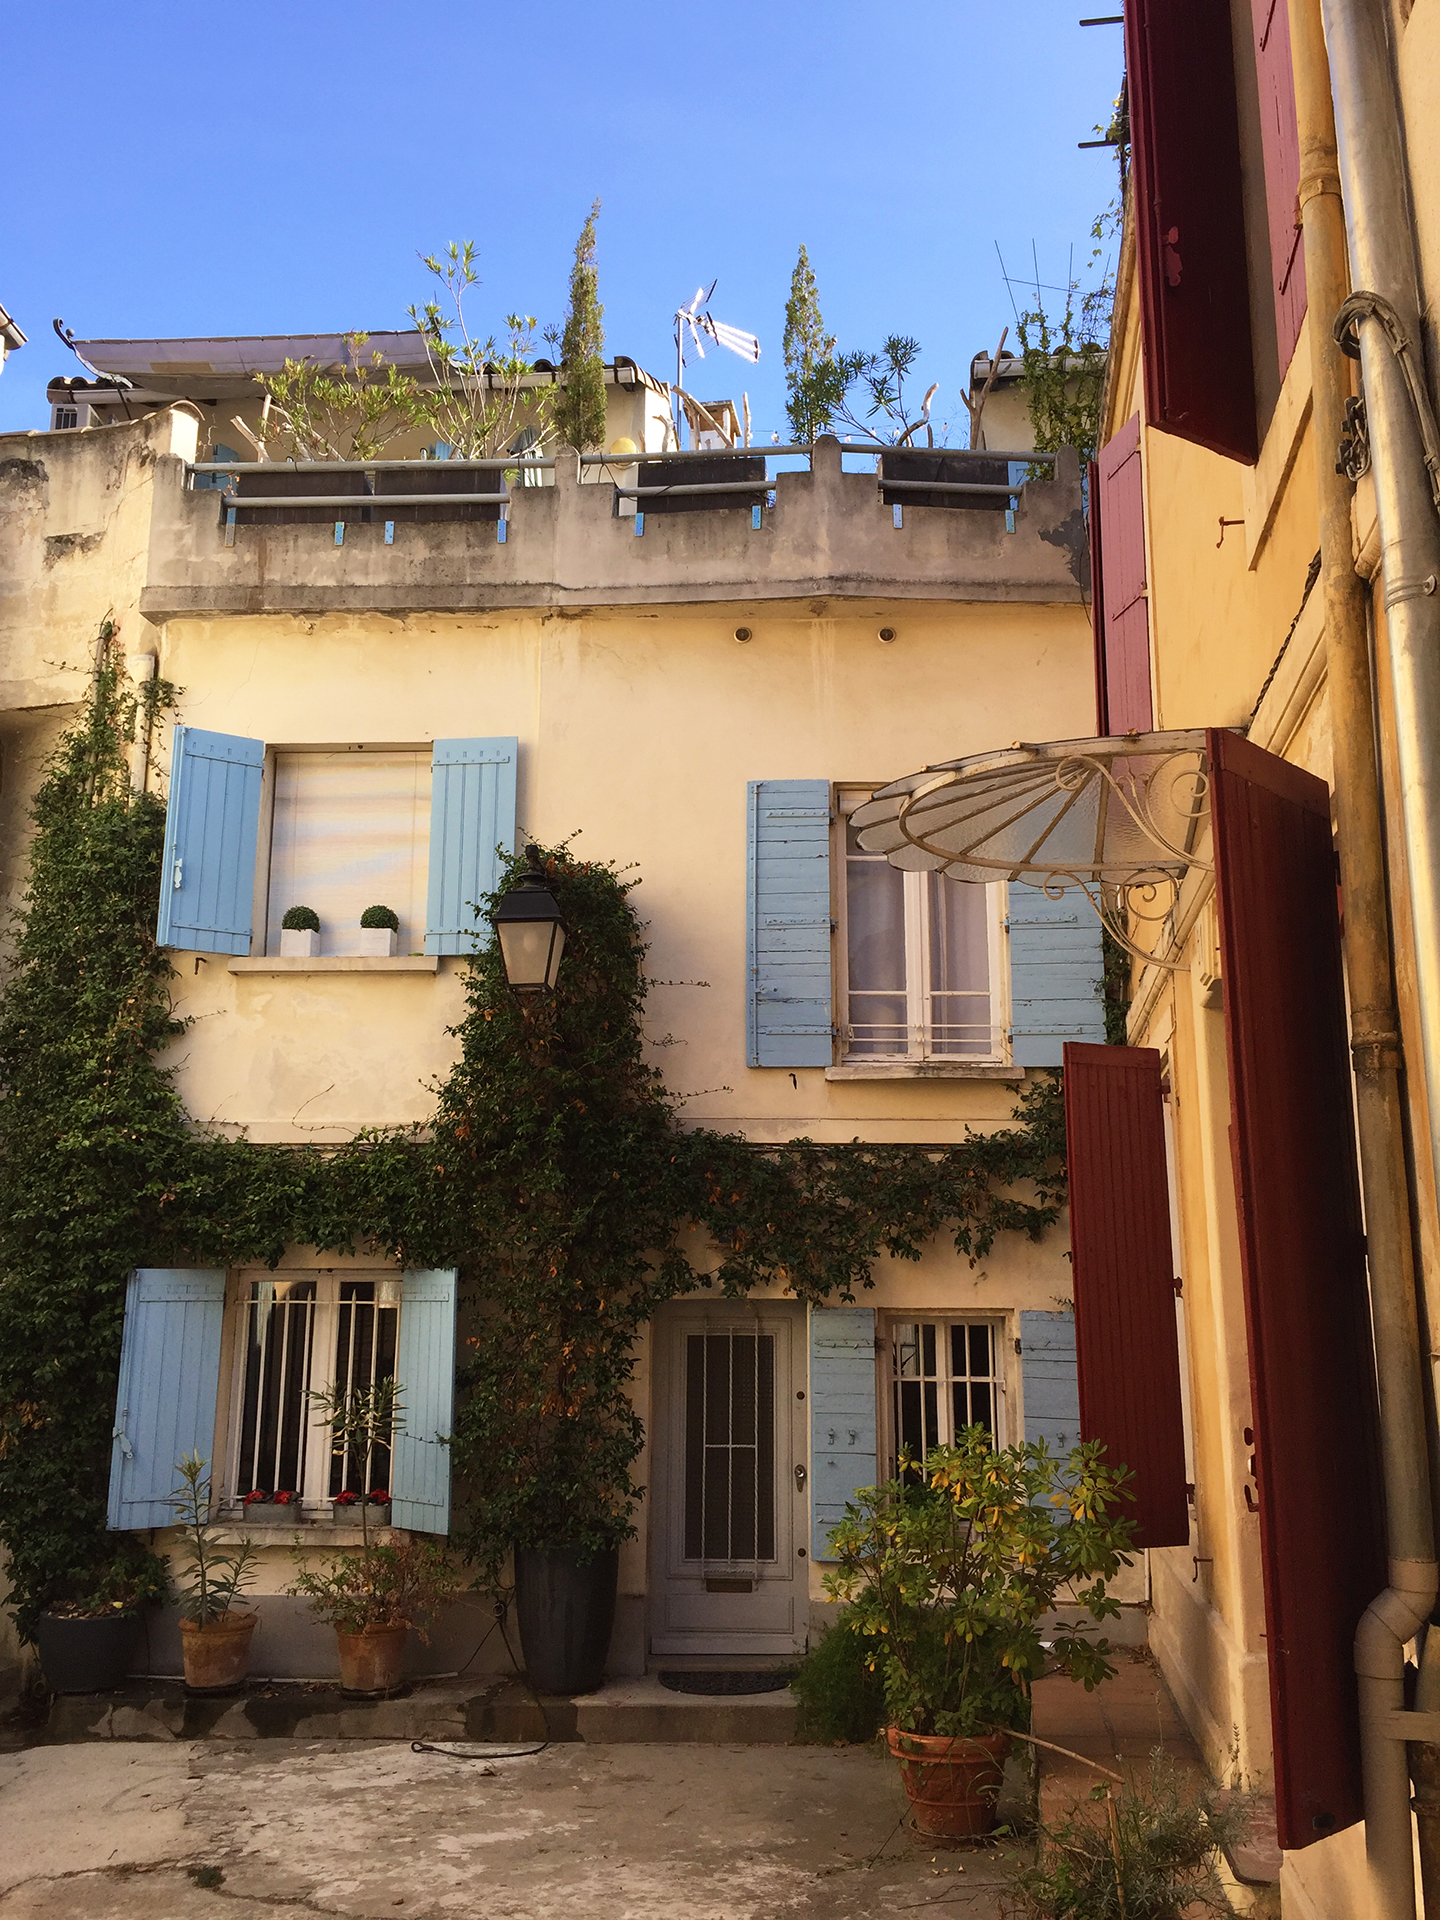 Rue Roulet. Check out the iron and glass marquise on the right side!